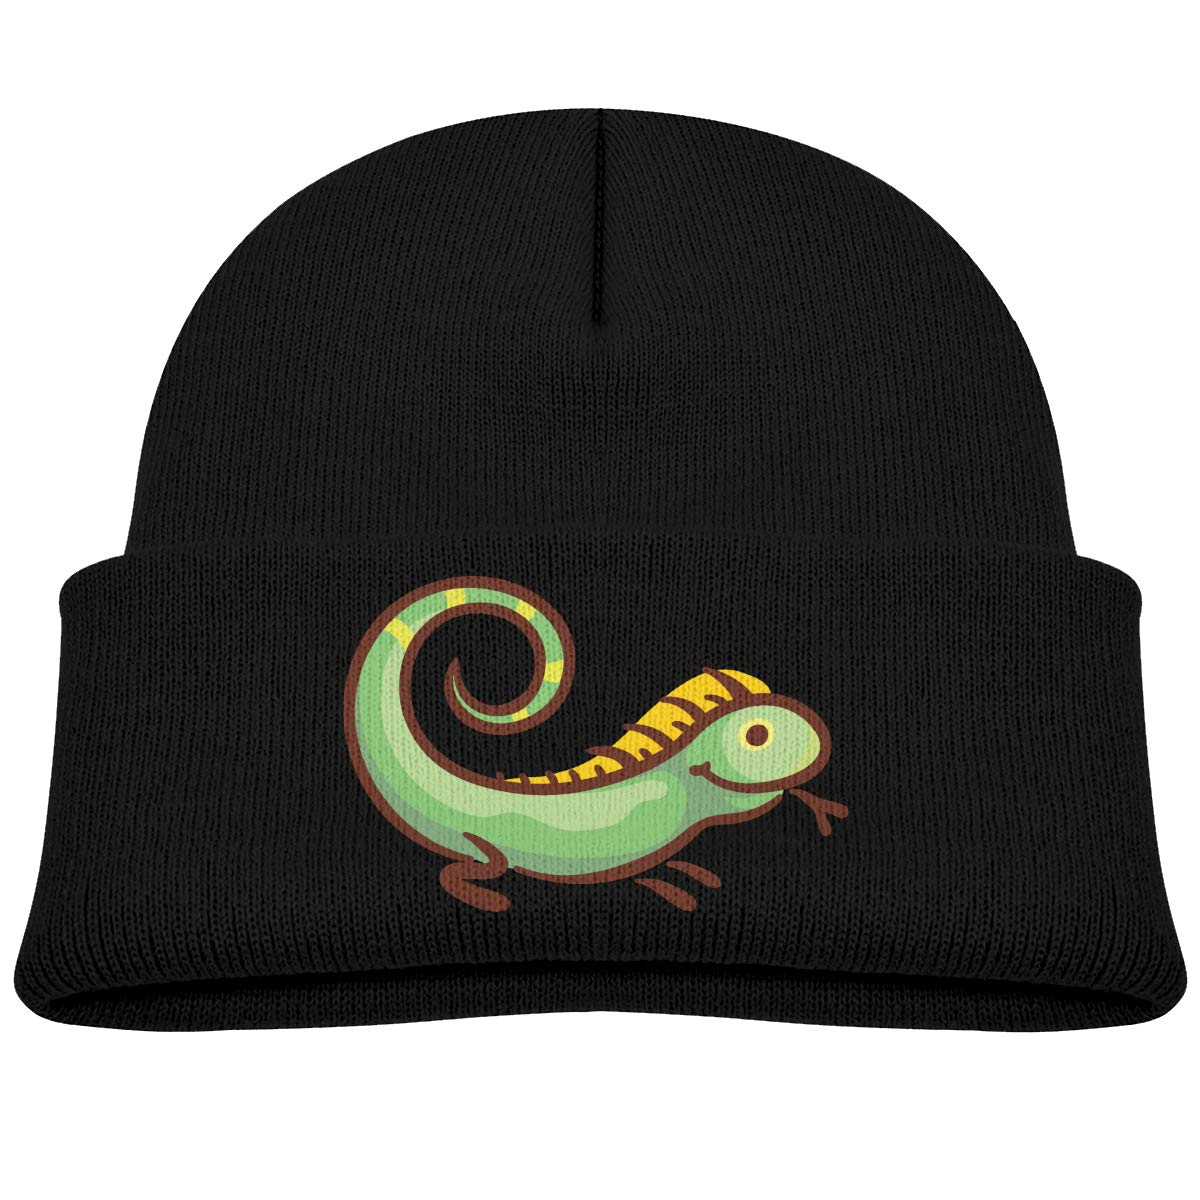 Lizard Knitted Hat Classic Skull Beanies Toddlers Cuffed Plain Cap